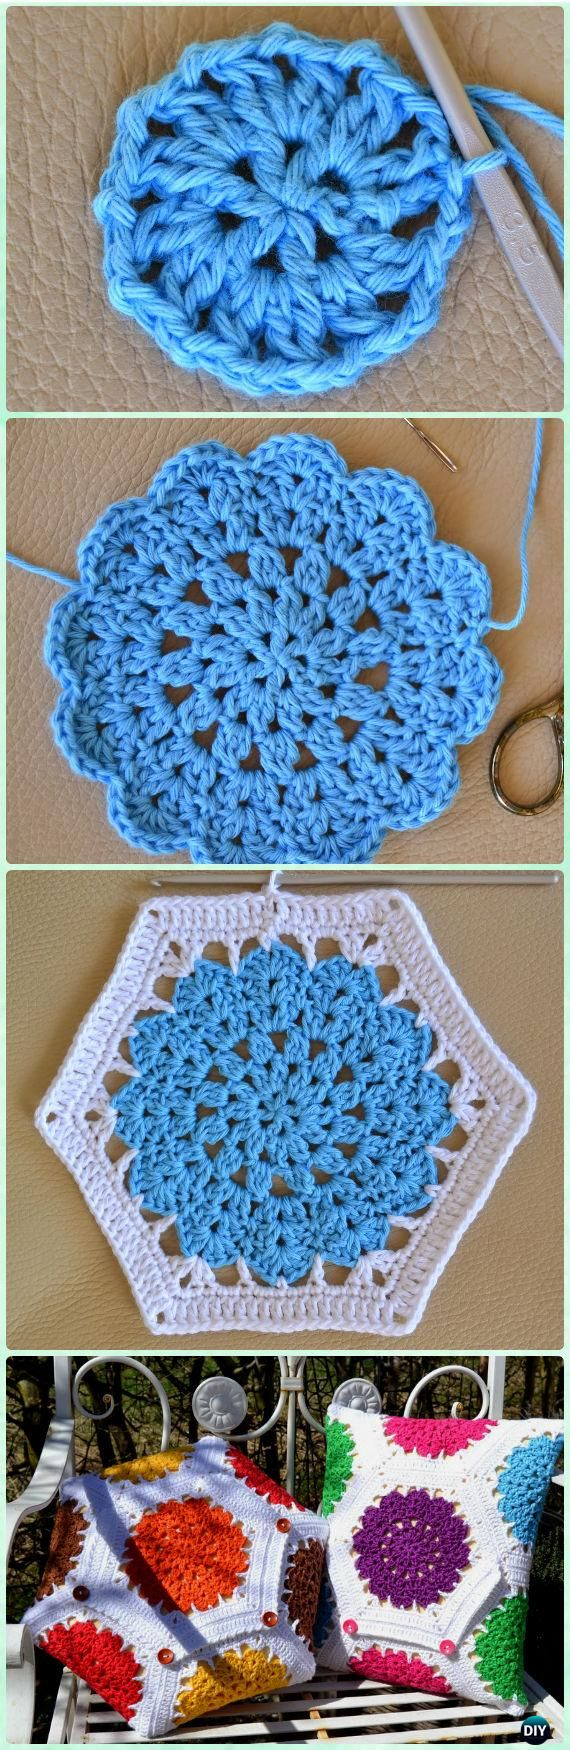 Crochet Hexagon Motif Free Patterns | Häkeln, Square und Handarbeiten